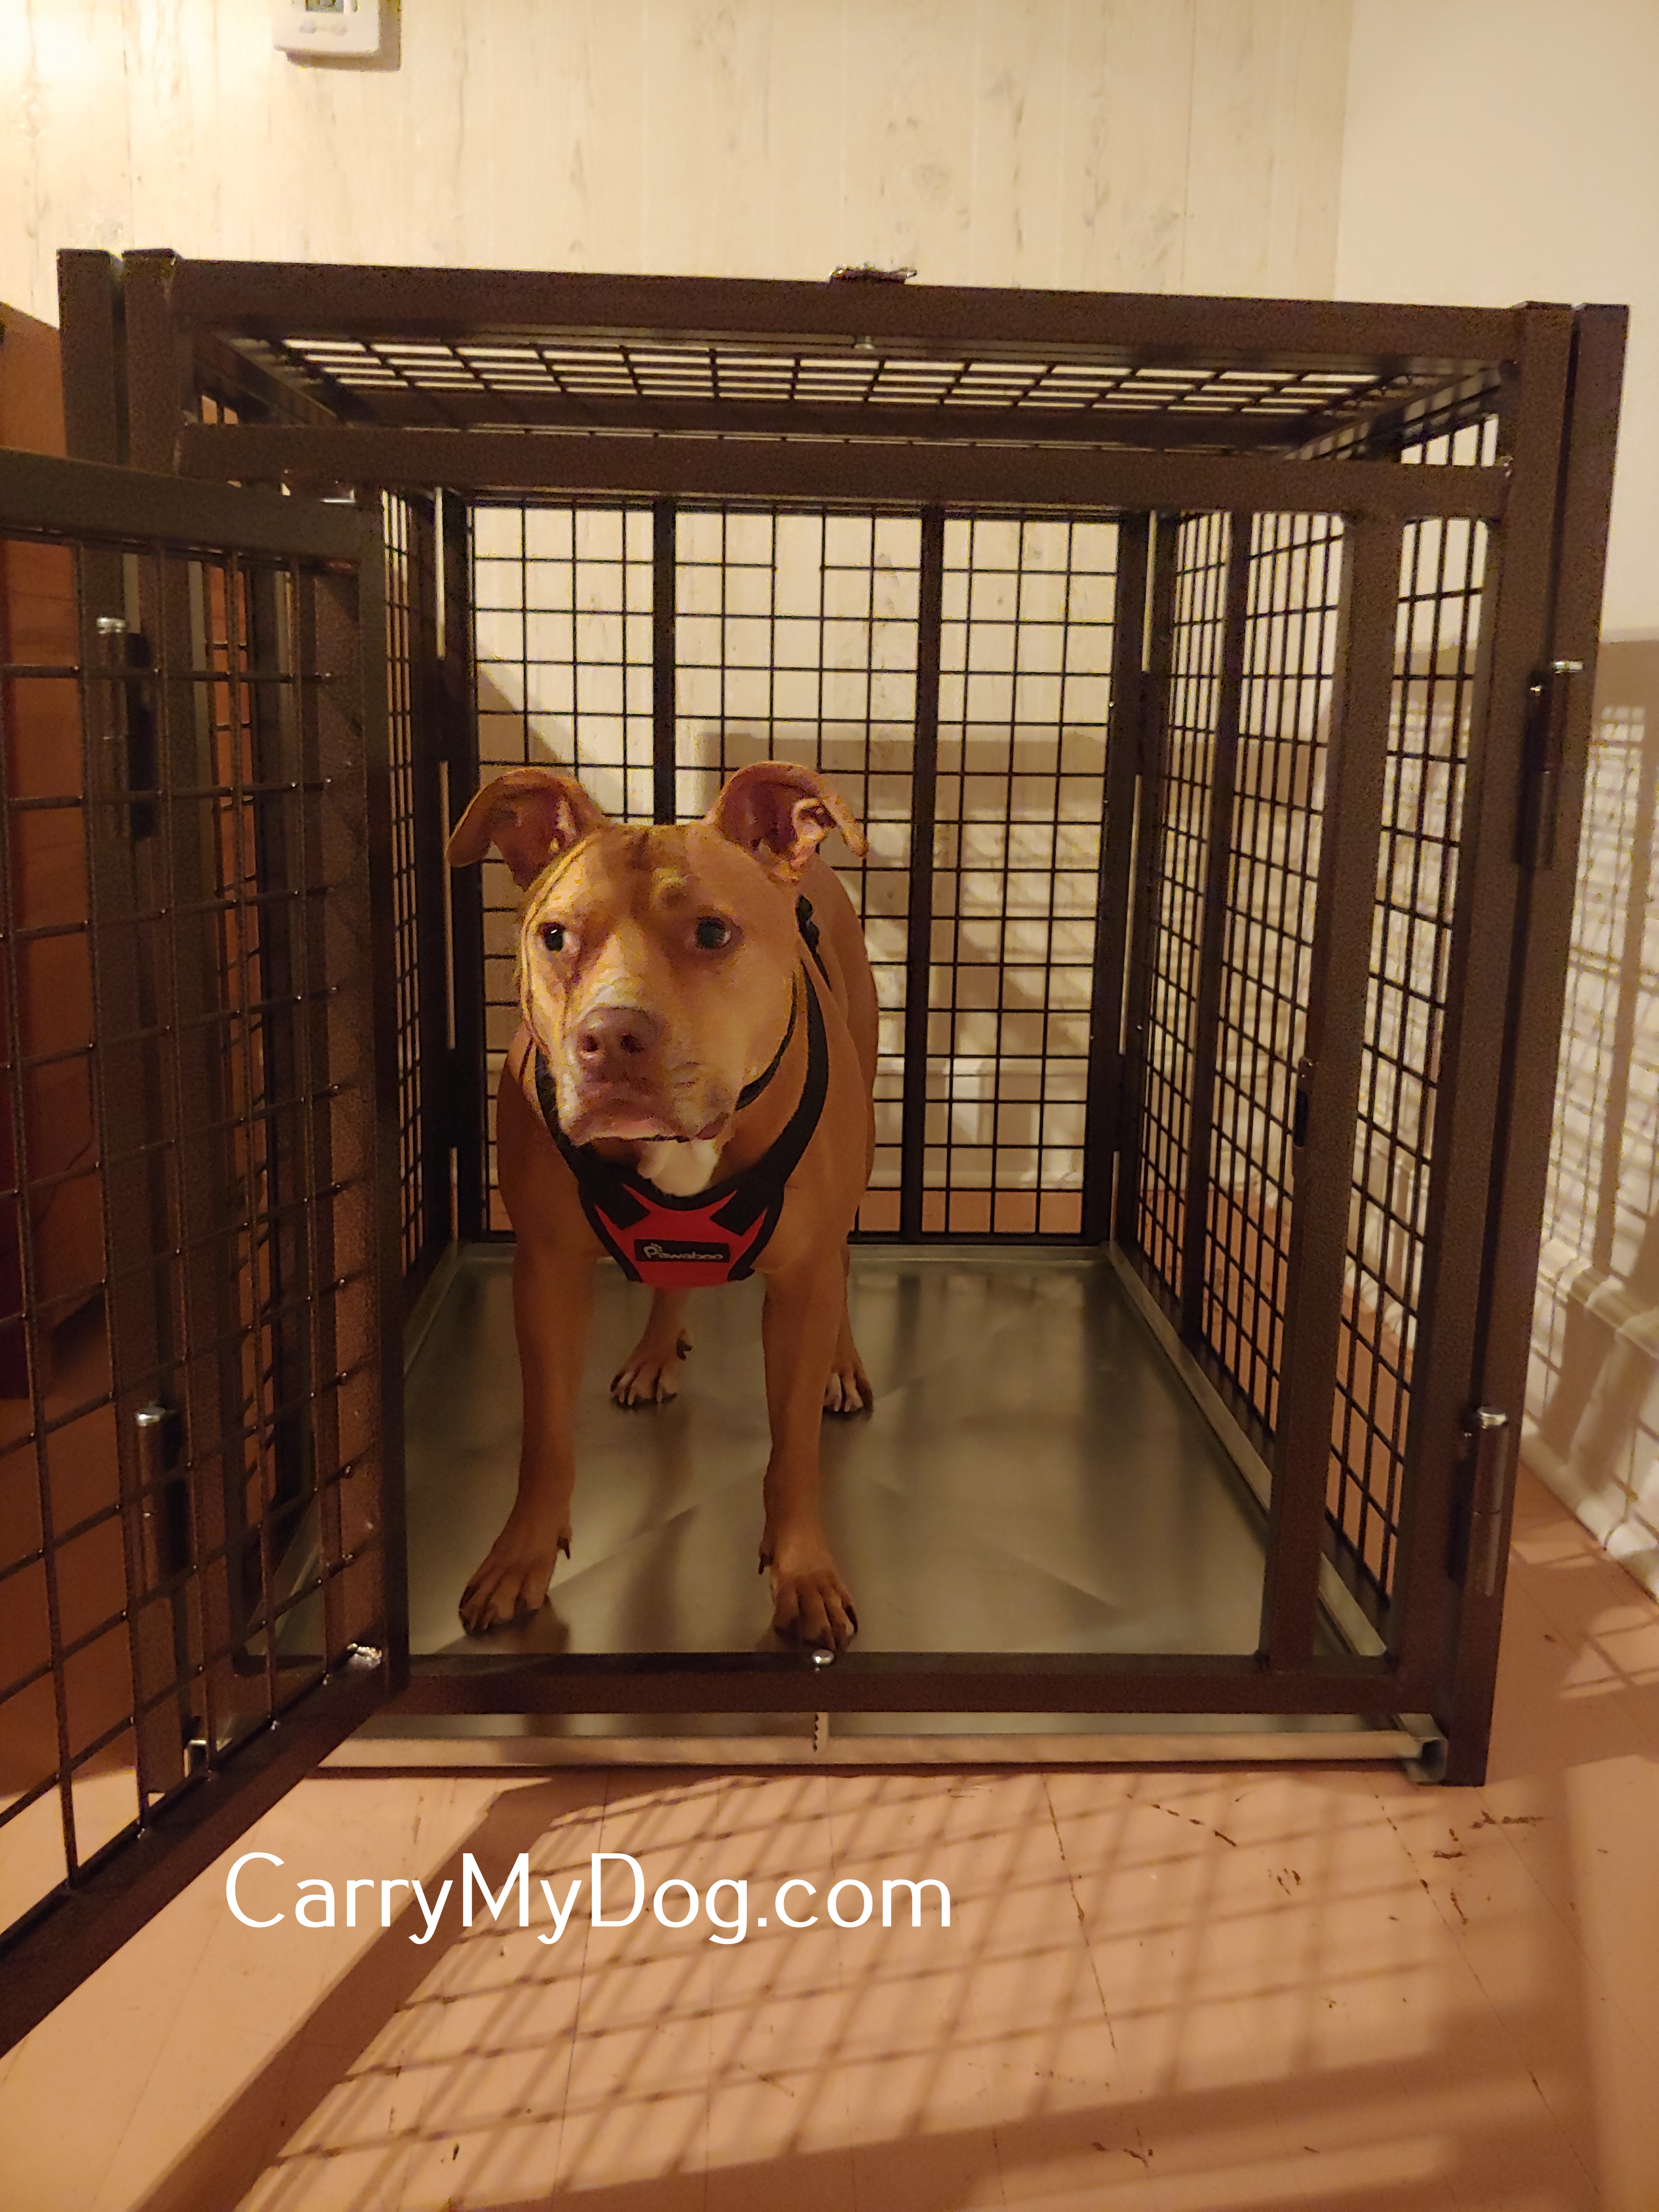 Stephanie_Dog_Xtreme_Heavy_duty_dog_crate_from_carrymydog.com